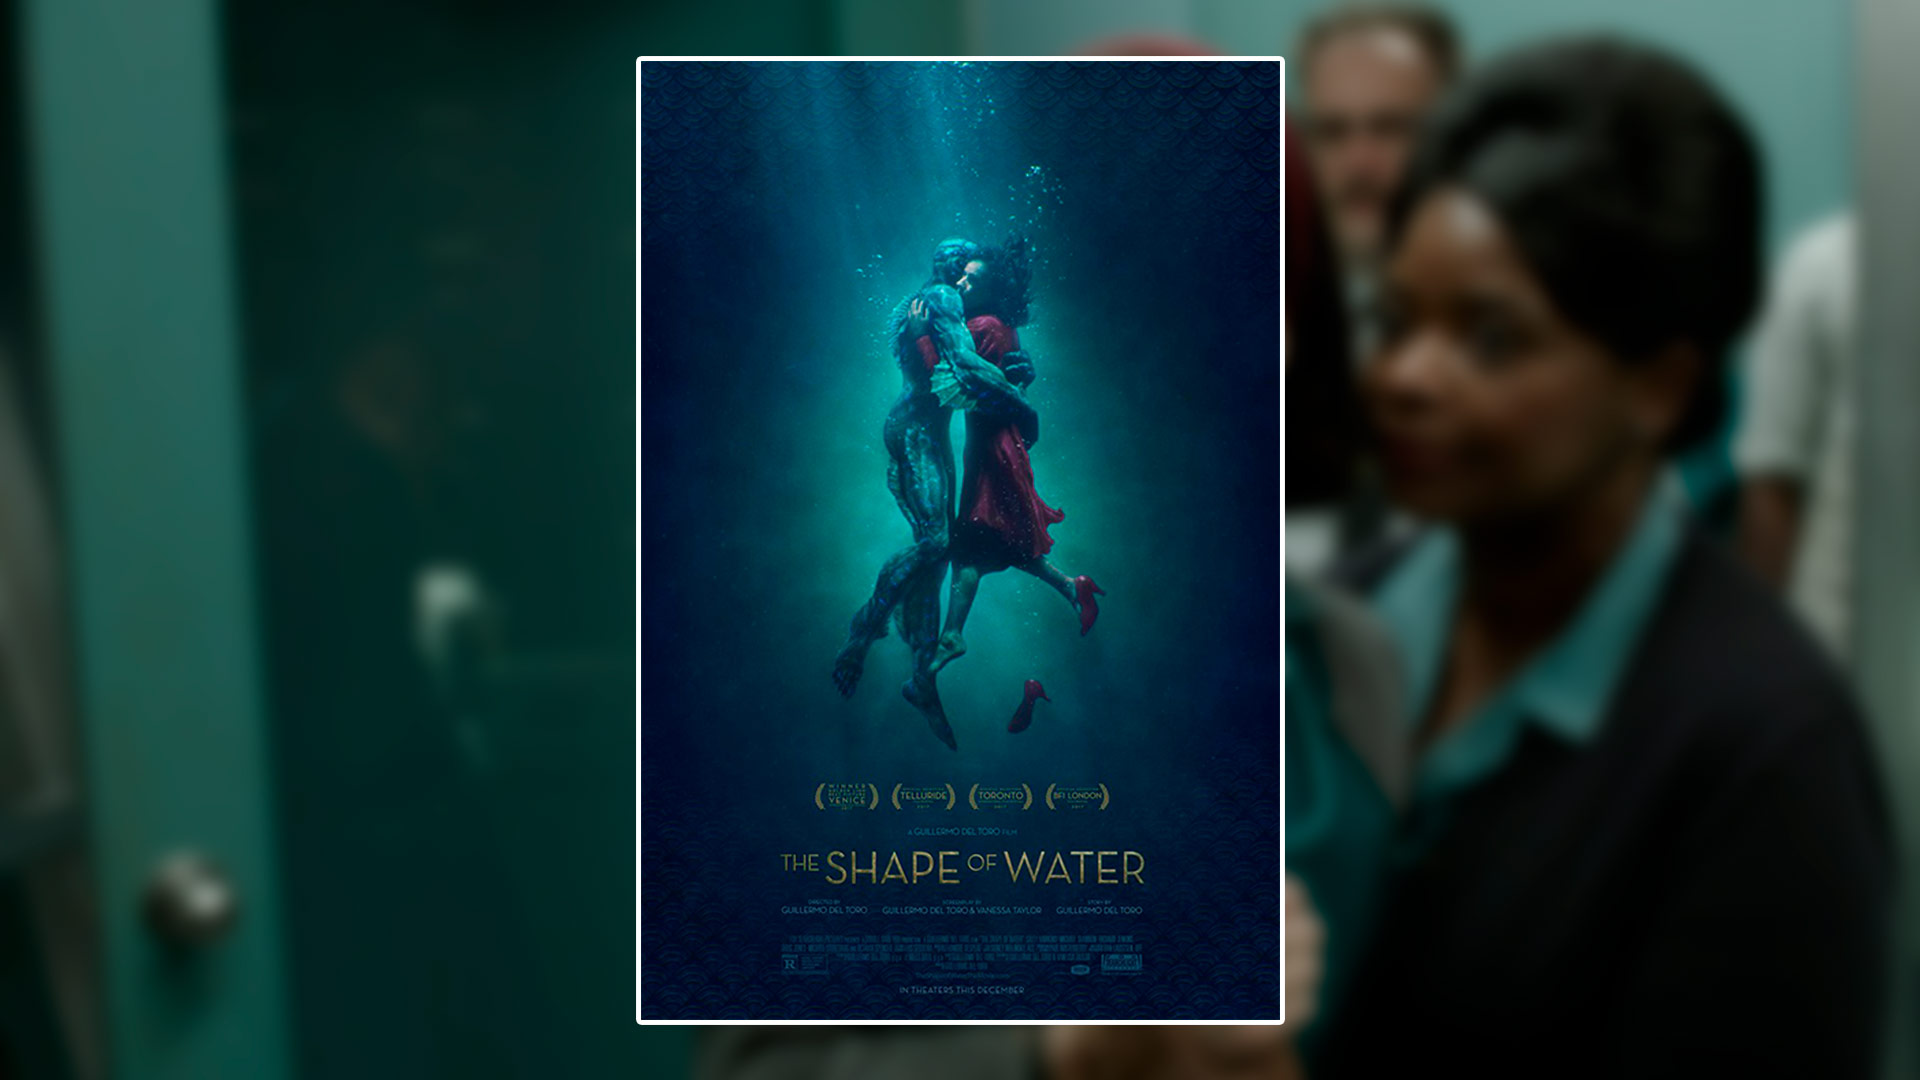 Critique du film The Shape of Water réalisé par Guillermo del Toro